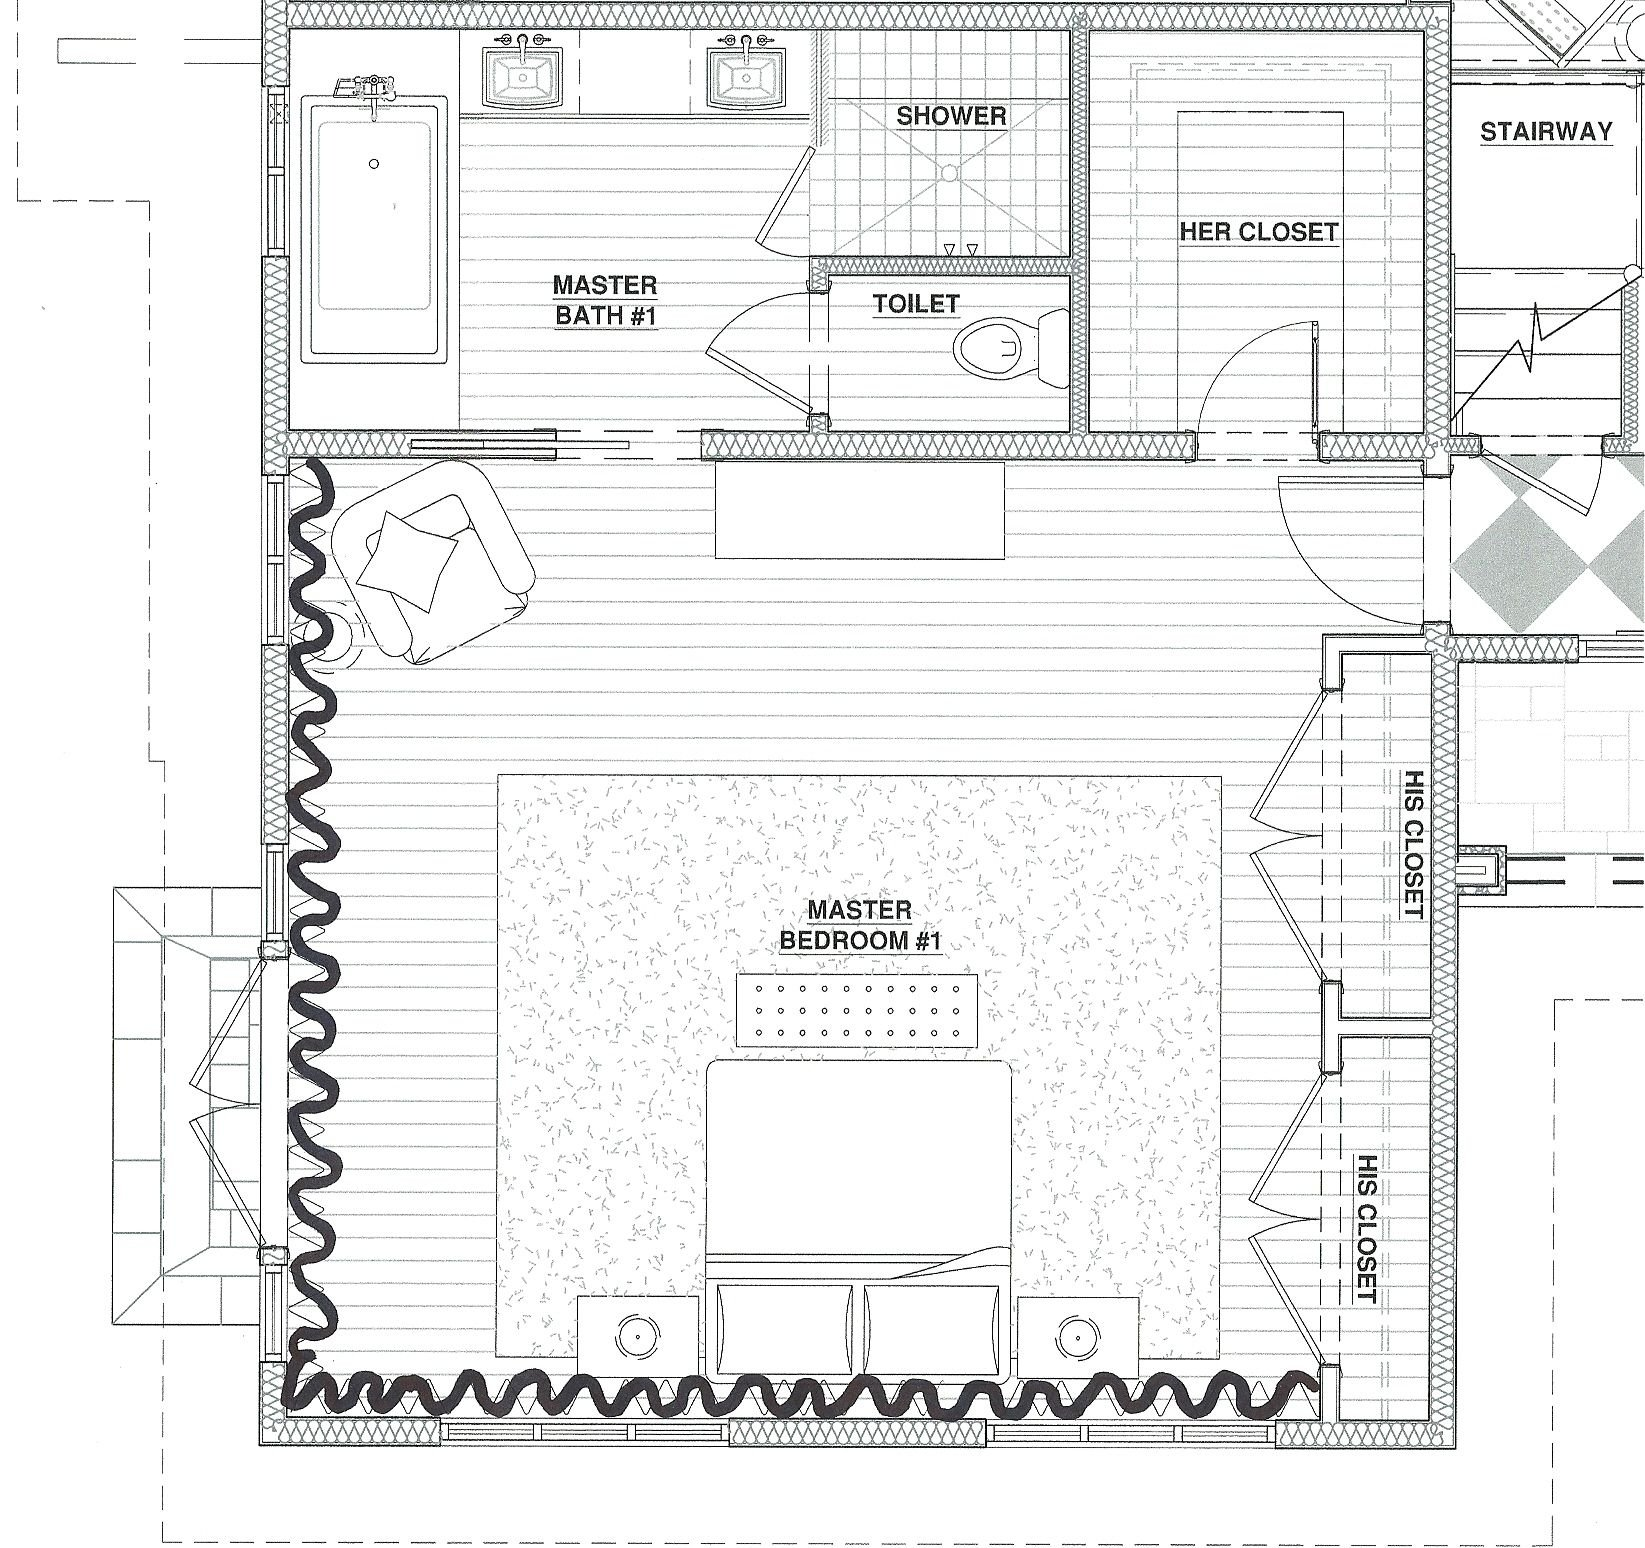 master bedroom floor plans | picture gallery of the master bedroom